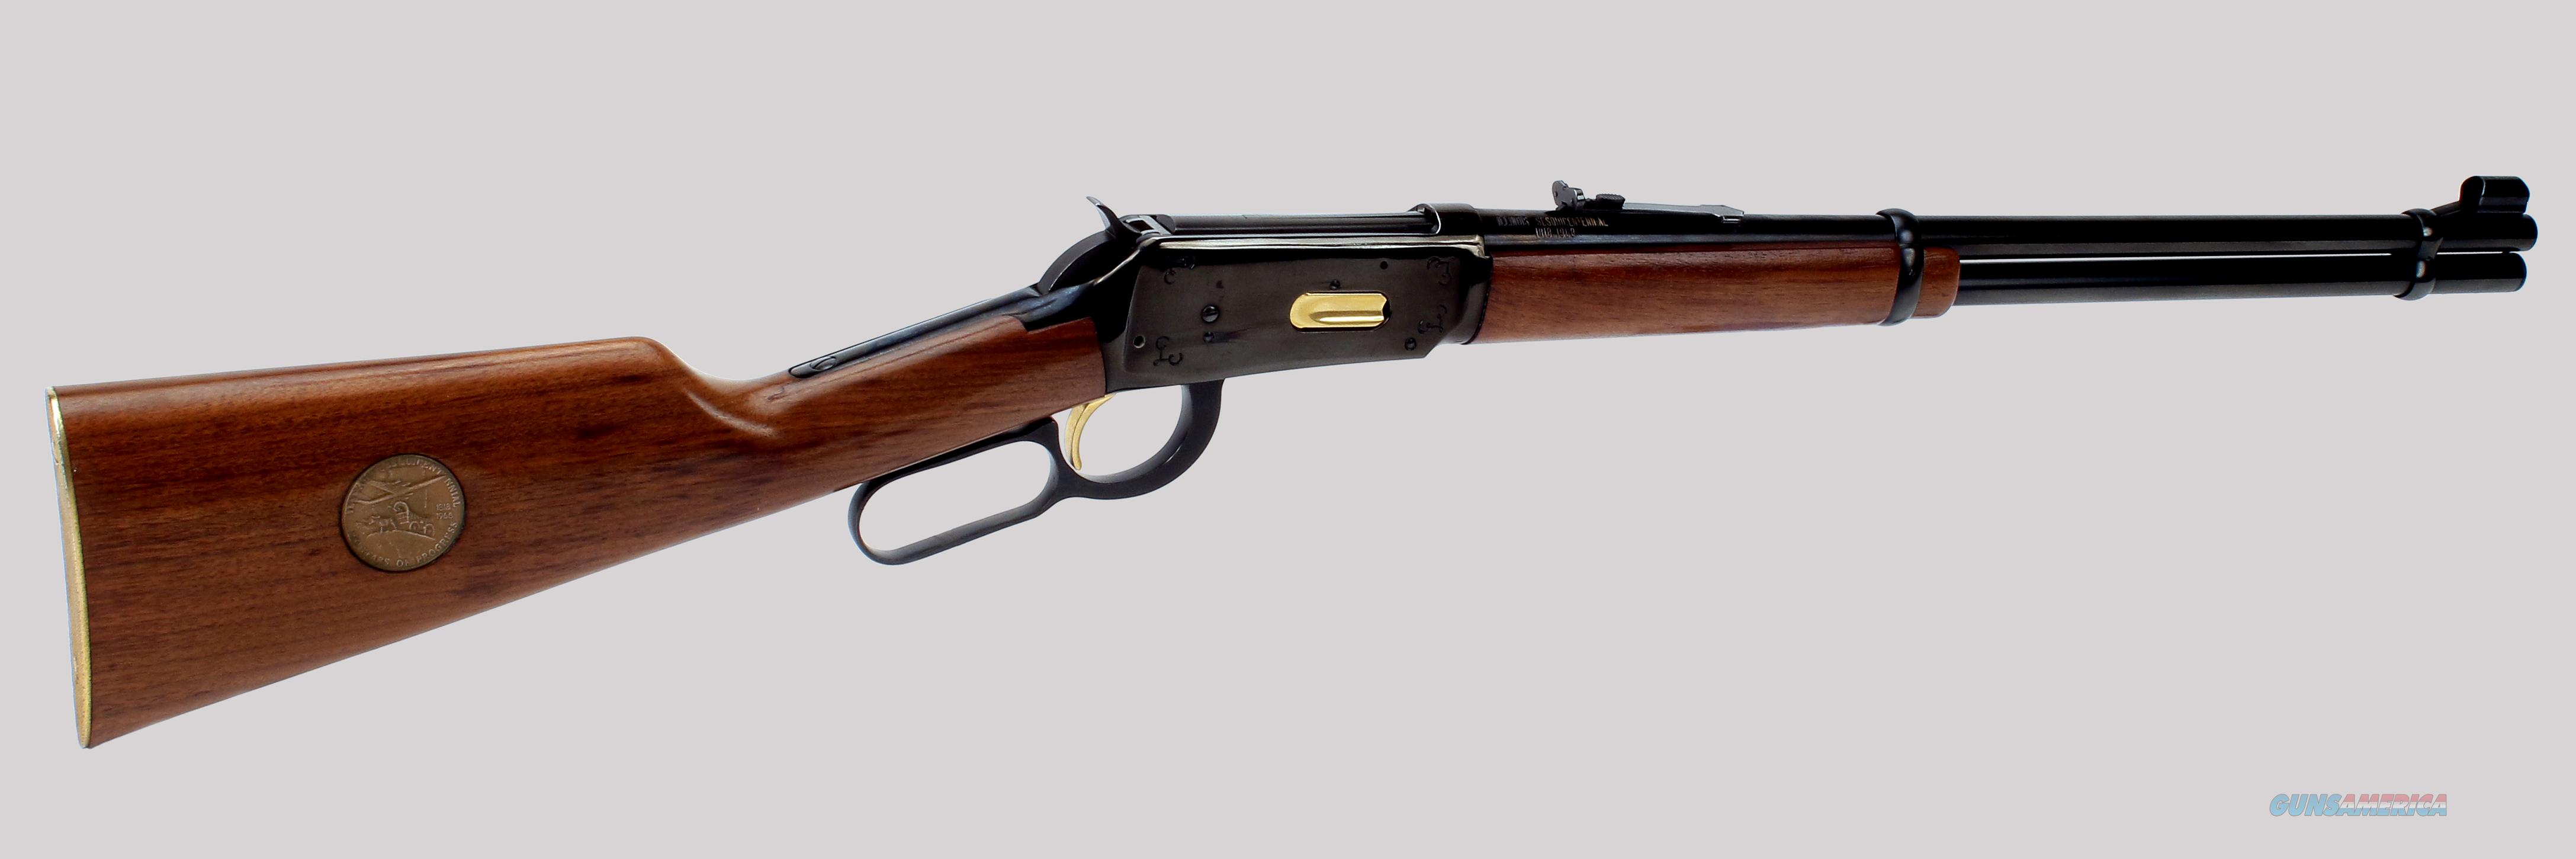 Winchester IL. Sesquicentennial Model 94 Rifle  Guns > Rifles > Winchester Rifles - Modern Lever > Model 94 > Post-64